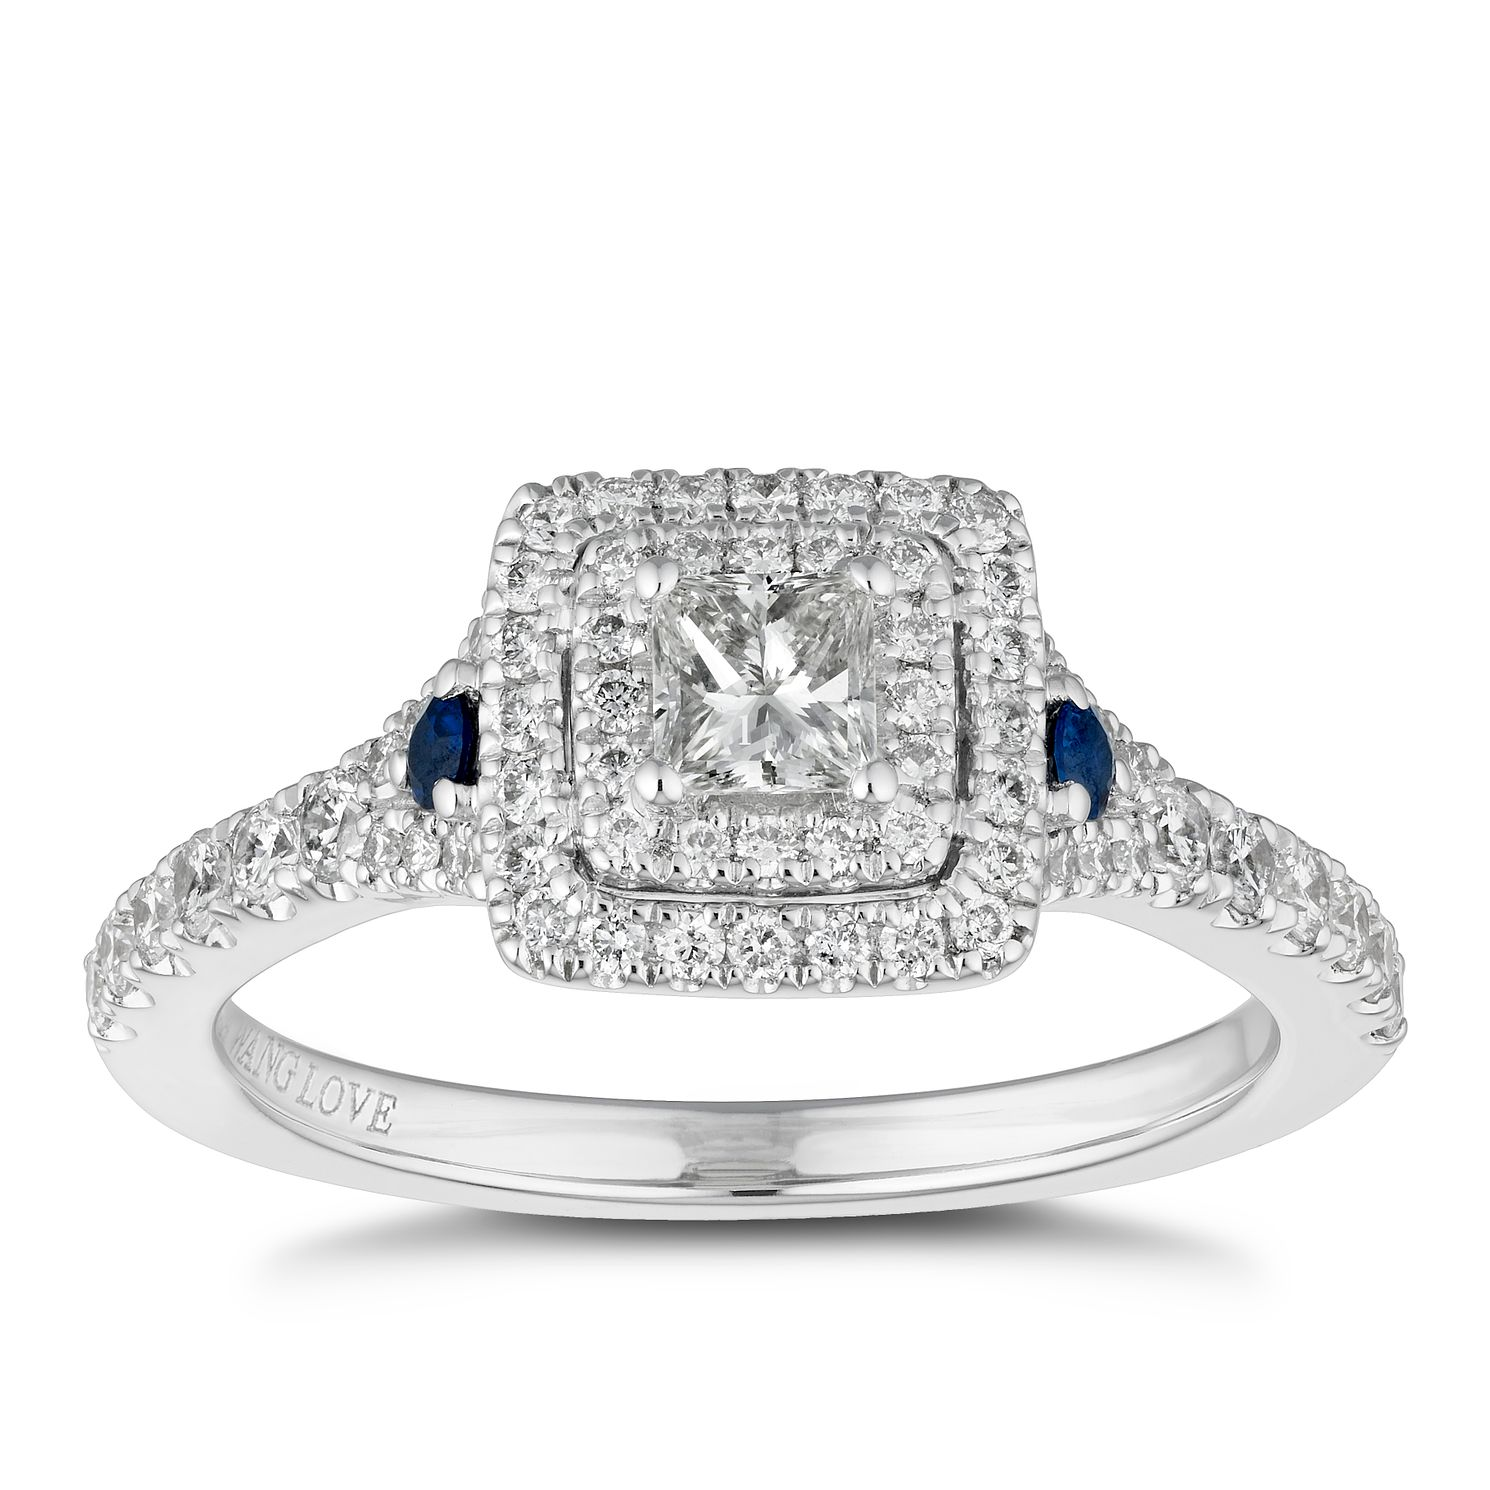 Vera Wang 18ct White Gold 0.70ct Diamond & Sapphire Ring - Product number 2504928